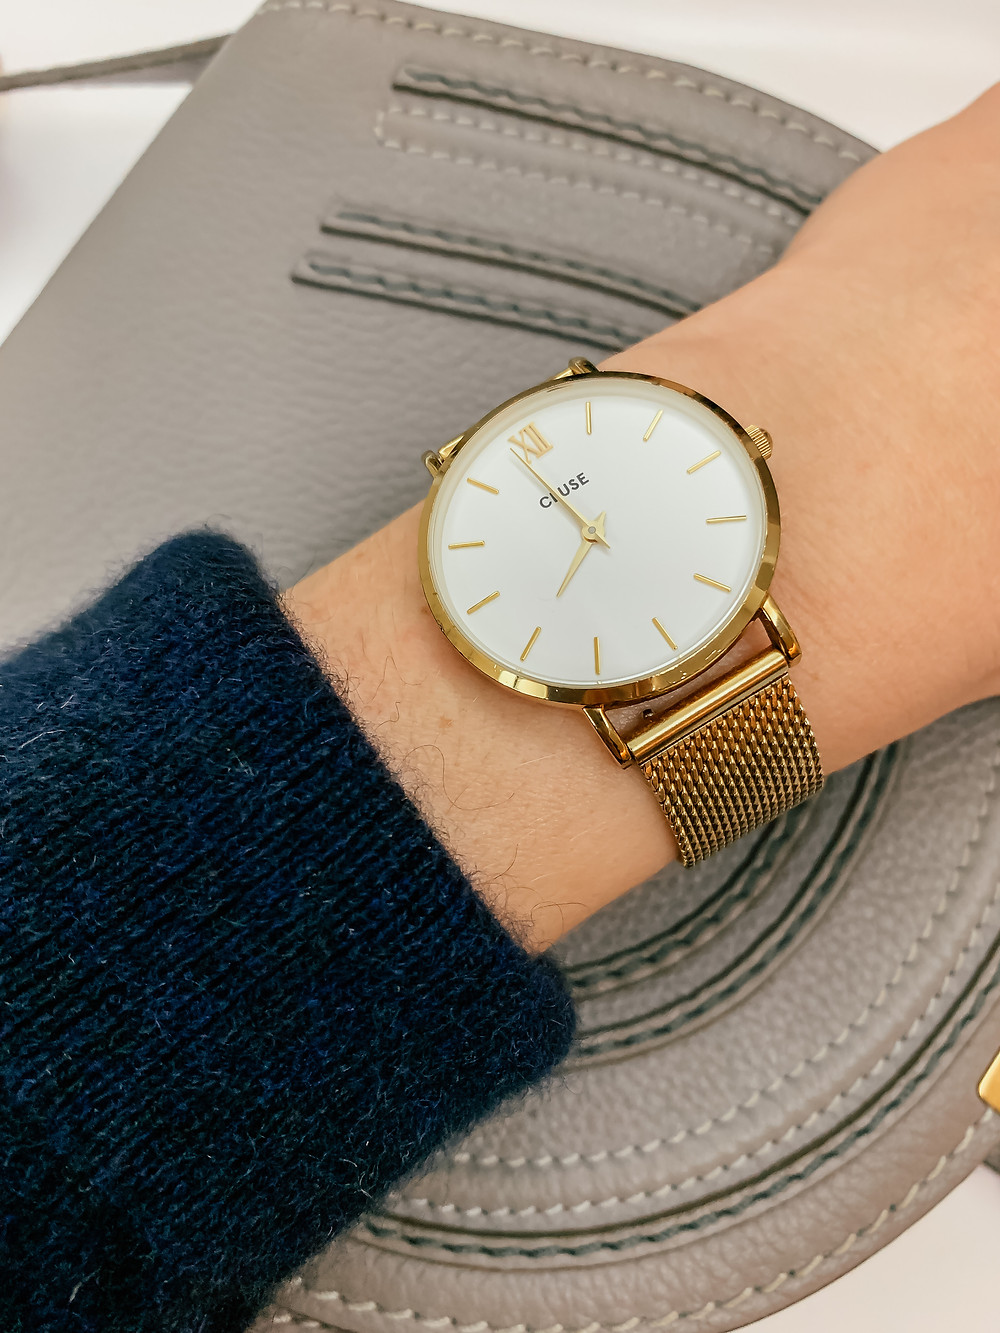 CLUSE Minuit Mesh watch in Gold | 8 Most-Worn Jewelry Pieces | Fashion | A Style Alike